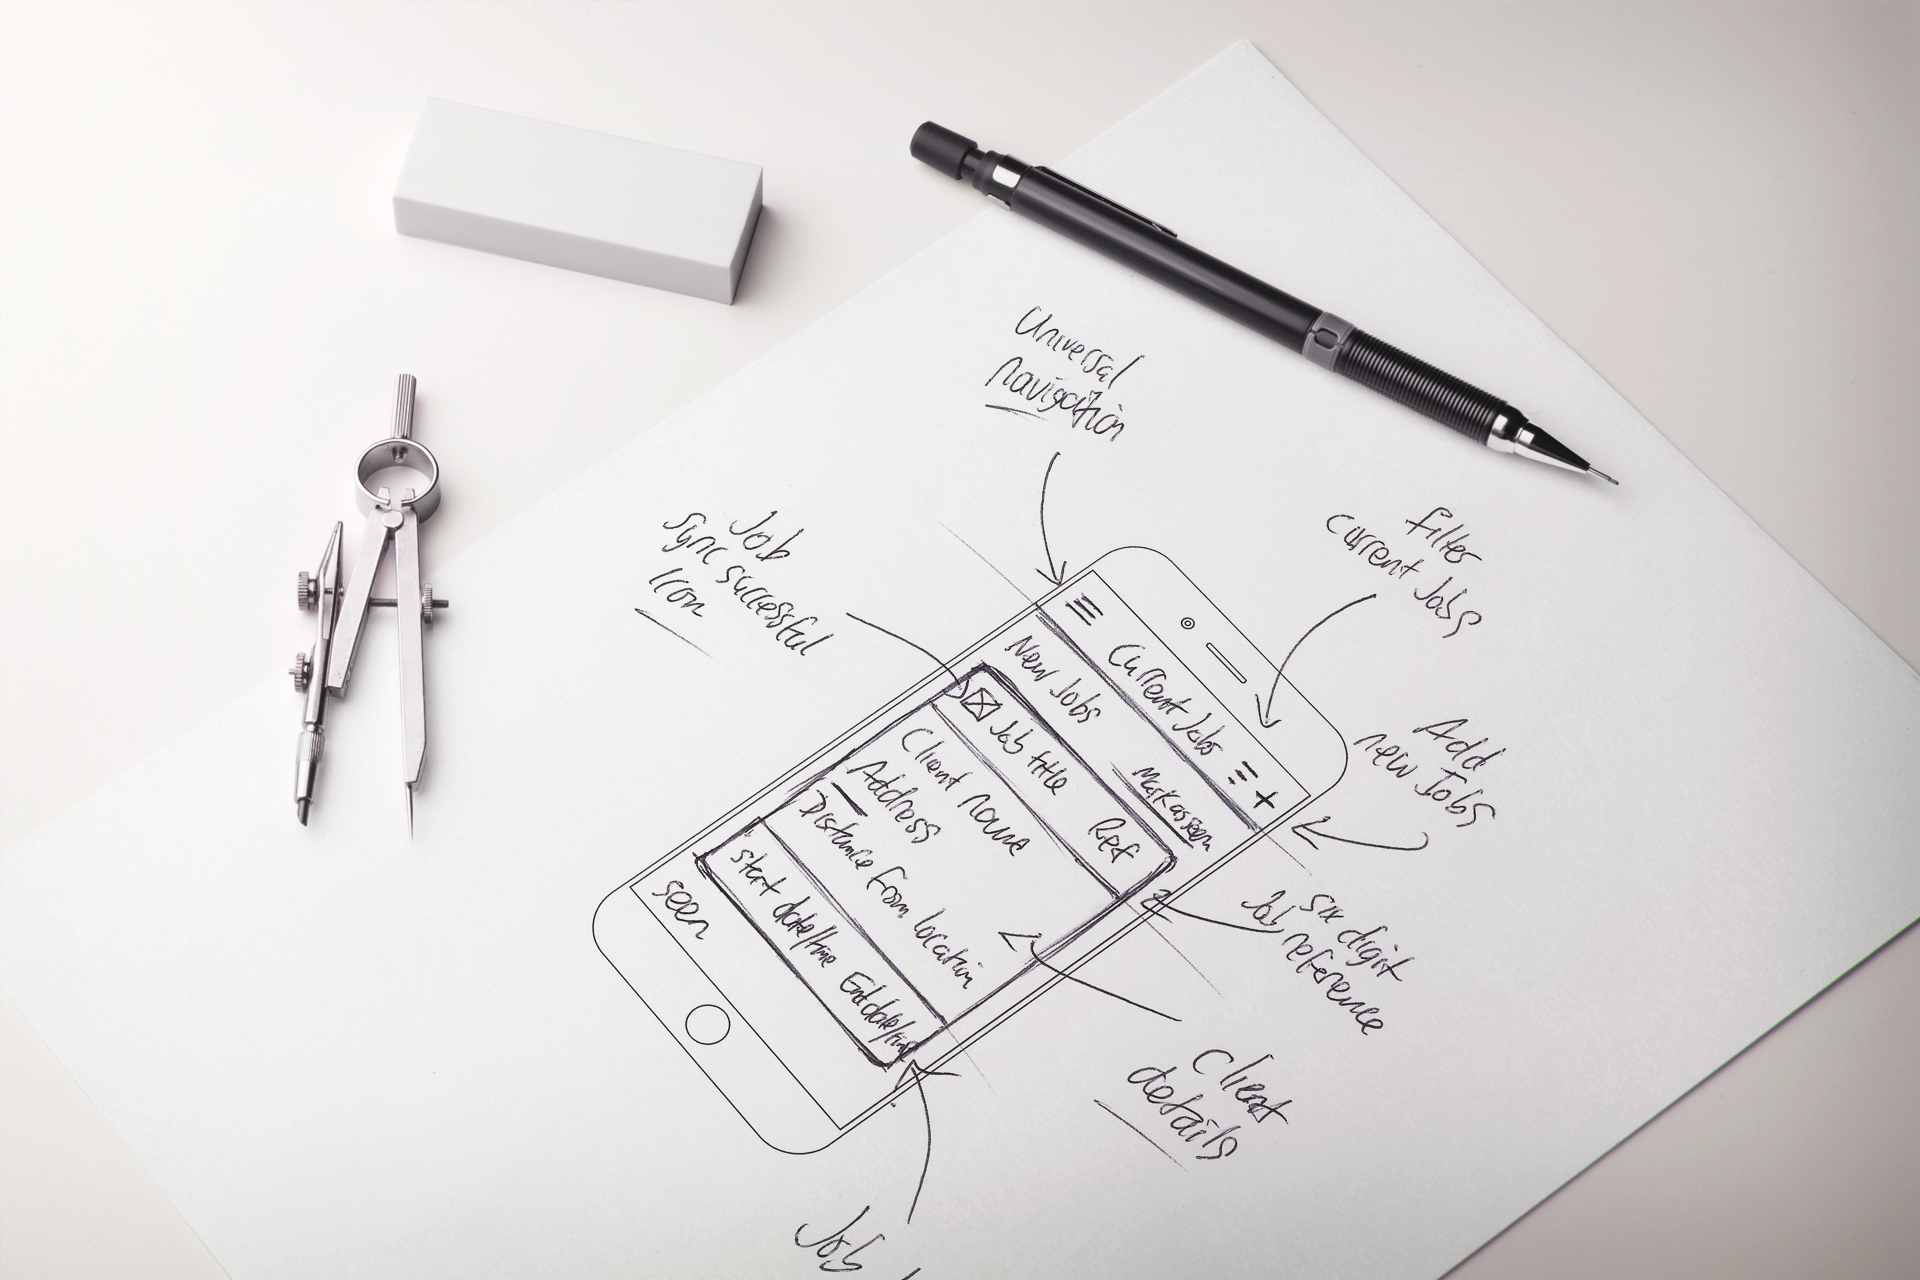 Clik Jobs GUI (Graphical User Interface) Sketching